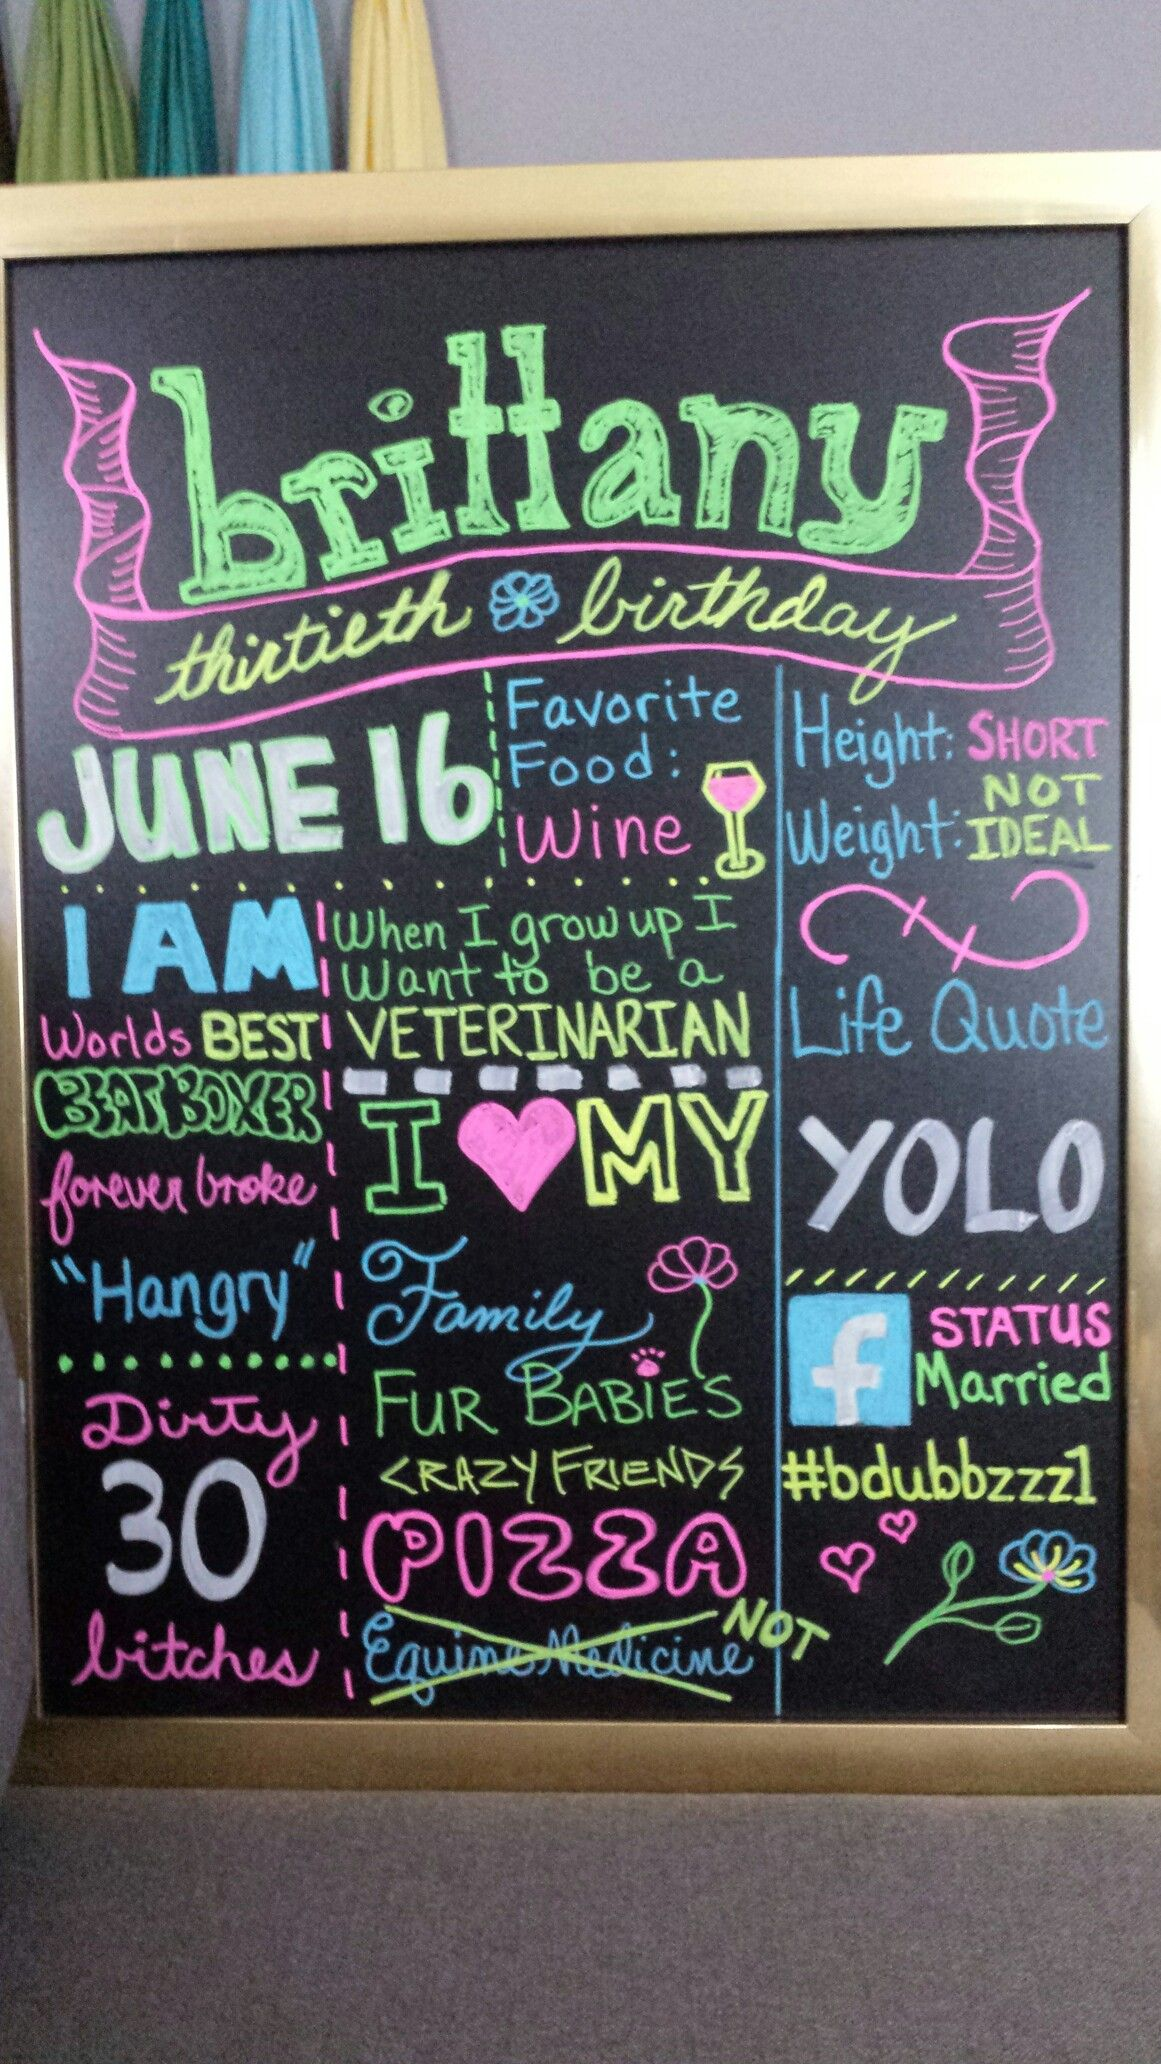 Dirty 30 Veterinary Birthday Chalk Board